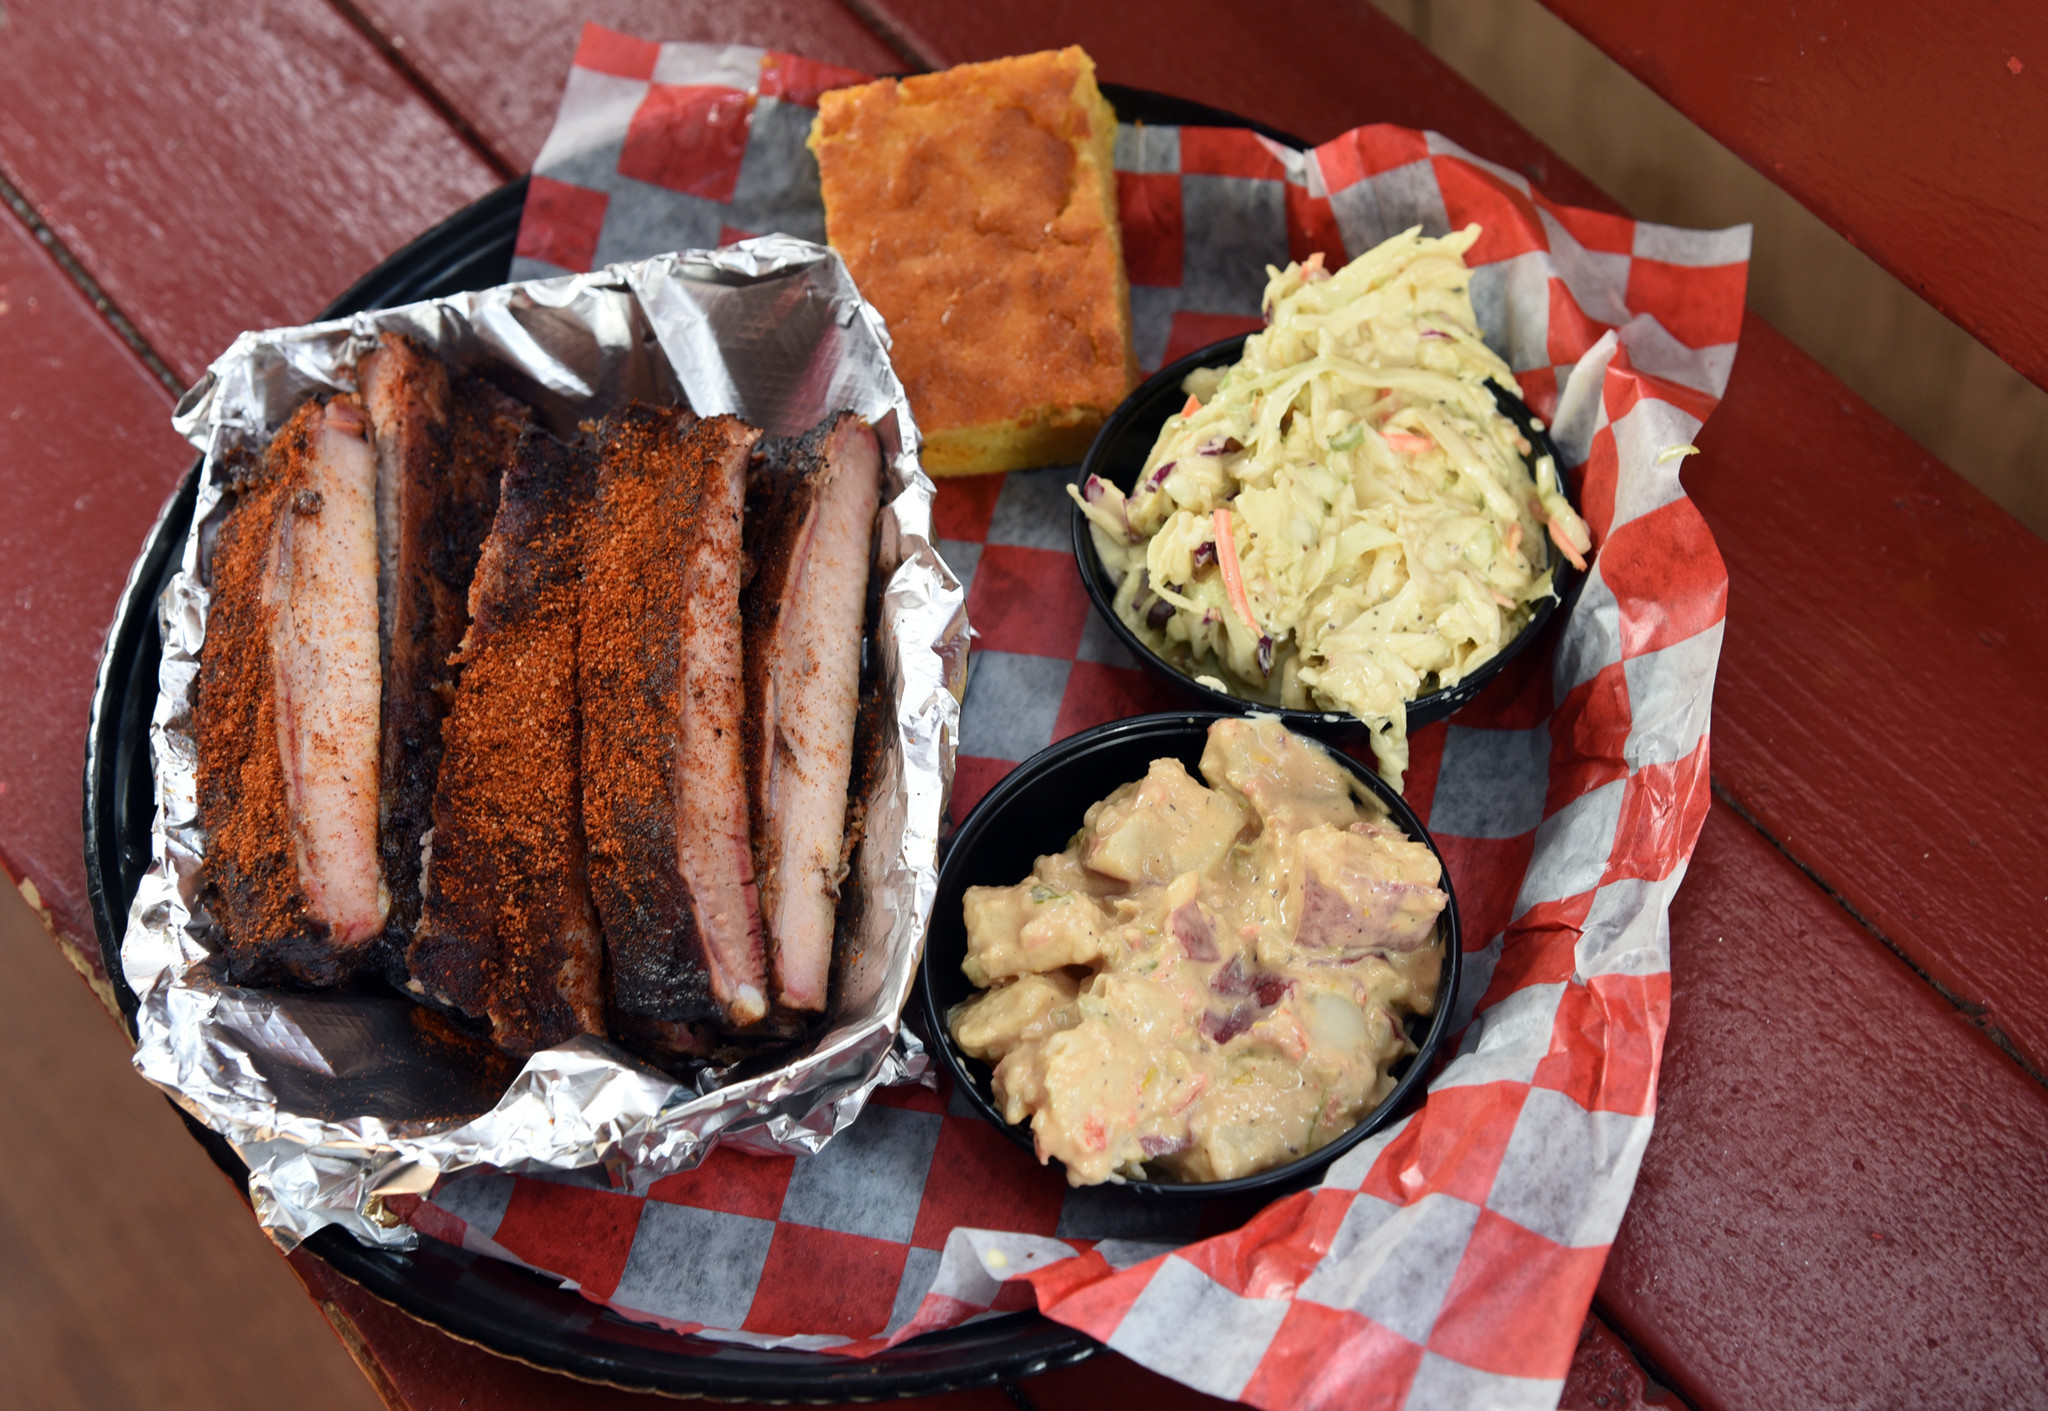 Barbecue beef and sides of potato salad, coleslaw and cornbread from Andy Nelson's Southern Pit Barb